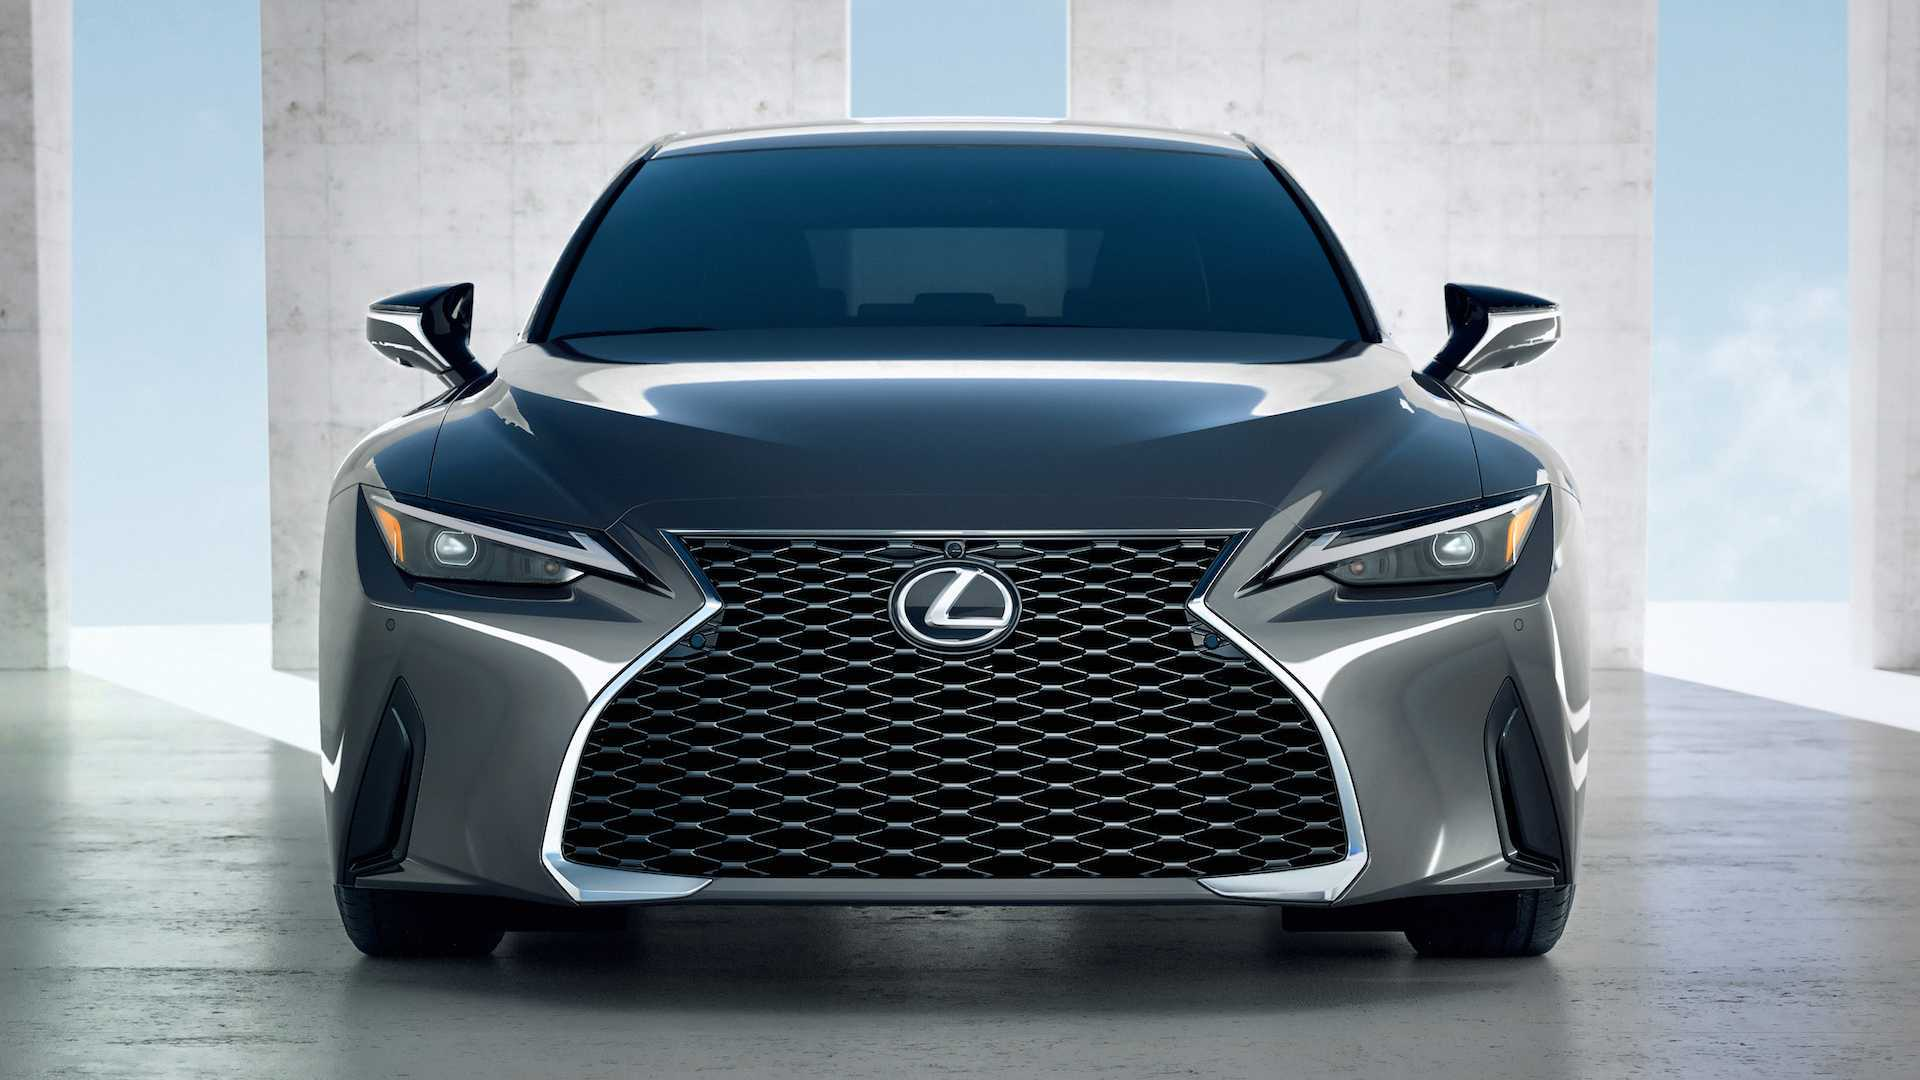 Lexus IS (2021) face lifting